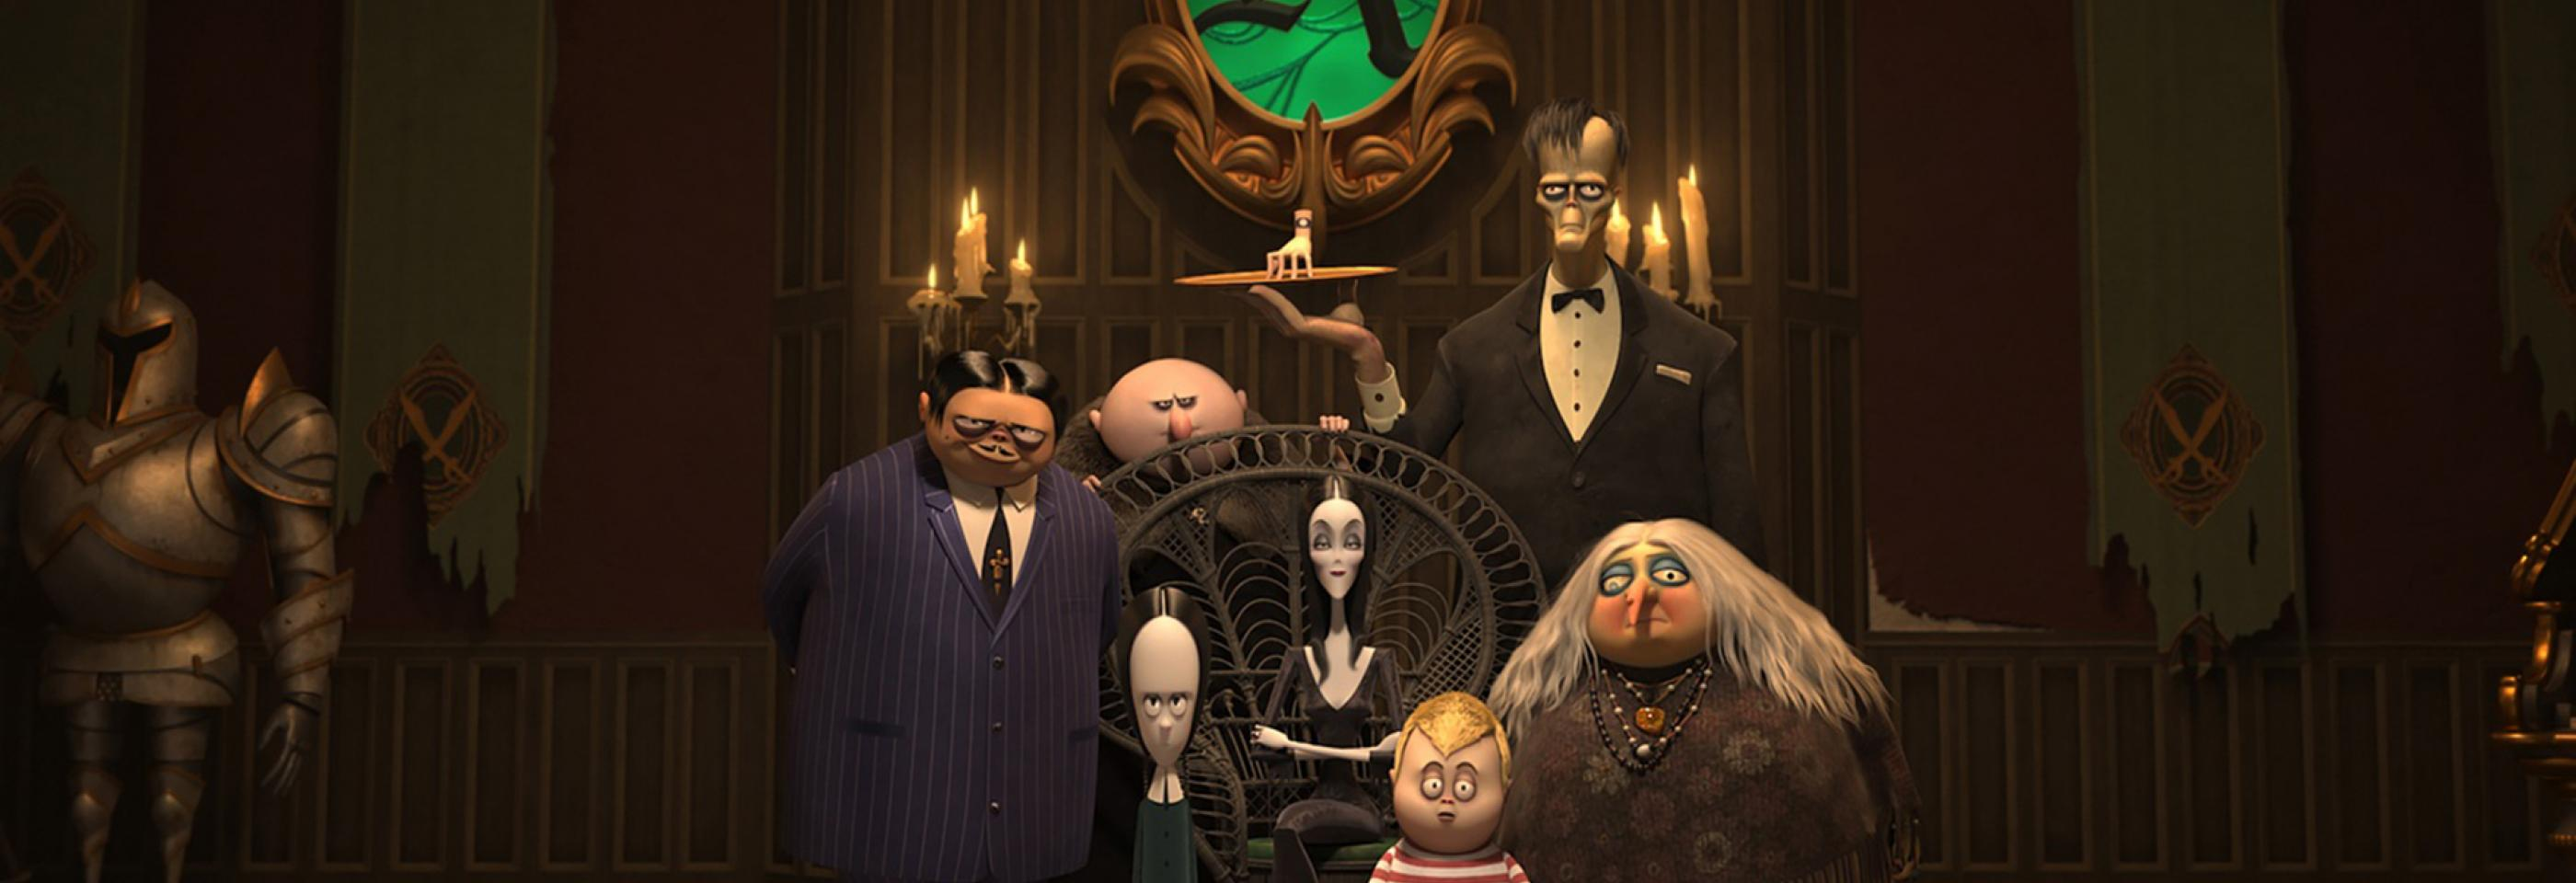 The Addams Family 2 (Cert TBC) + BSL Interpreted Creative Workshop - Derby Days Out